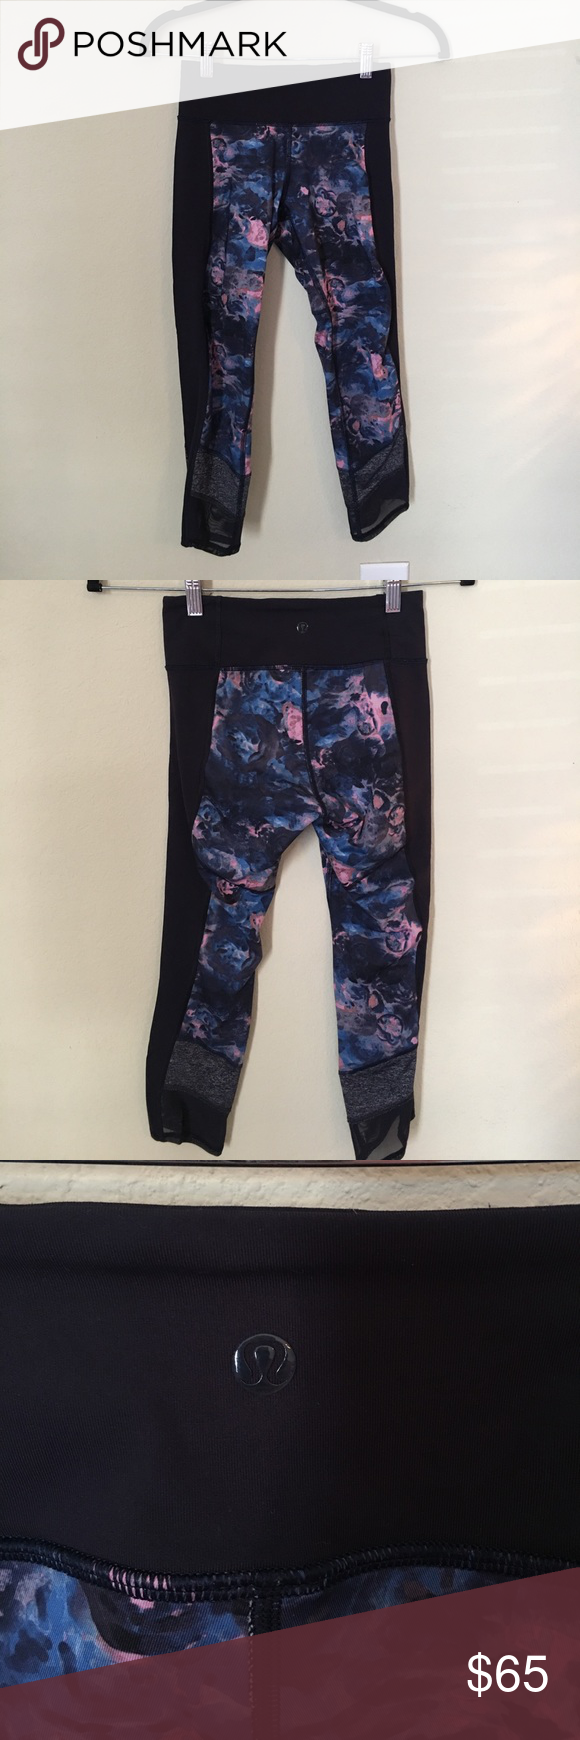 Lululemon Crops Perfect Condition! Worn once. Super cute navy and pink floral design. Mesh see through on the bottom. lululemon athletica Pants Leggings